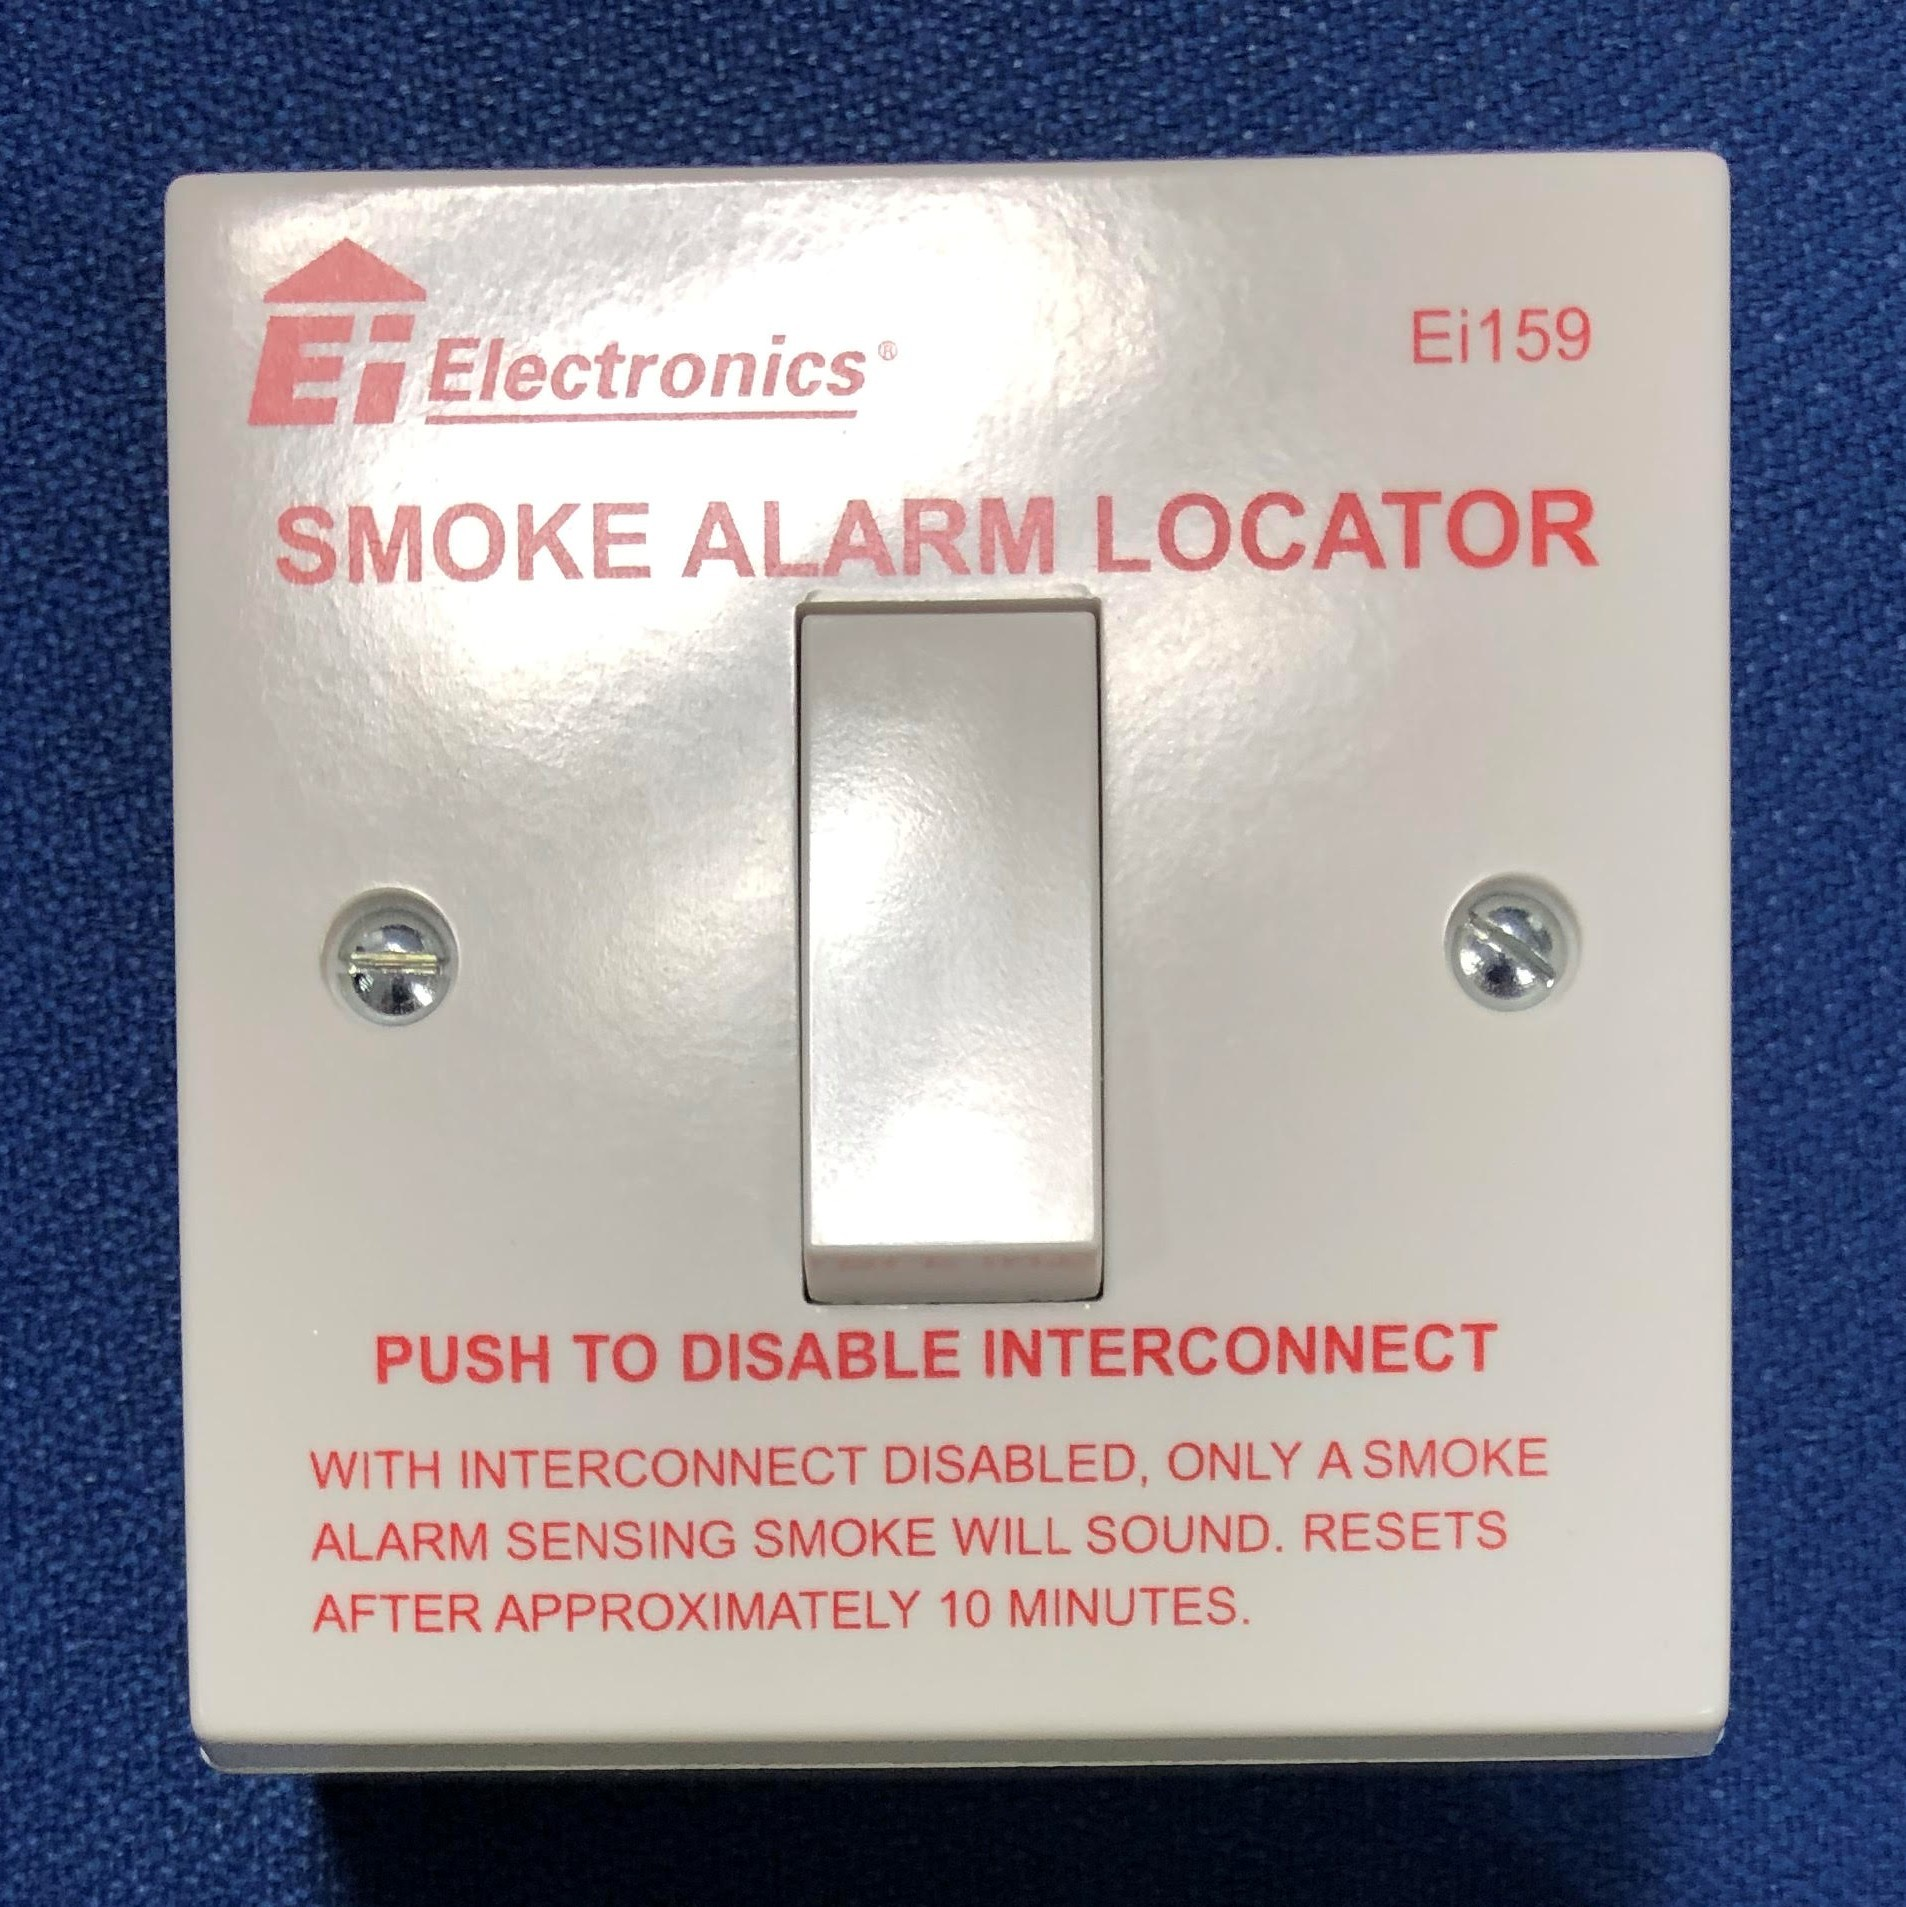 Aico Ei159 Smoke Alarm Locator Switch - Buy online or in store from John Cribb & Sons Ltd